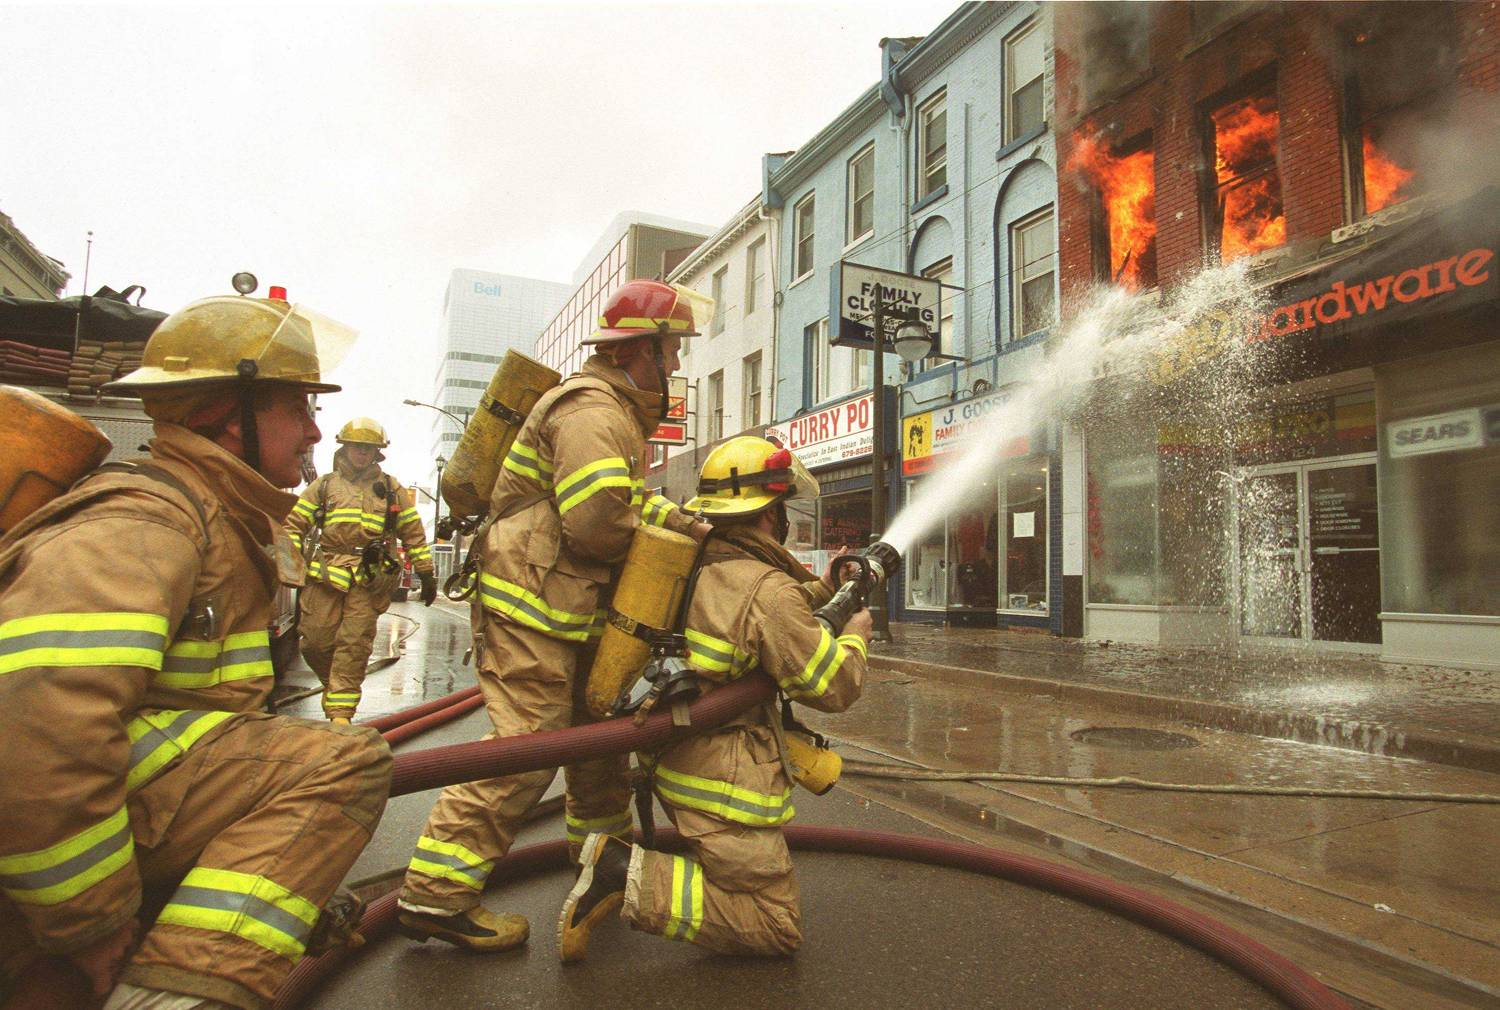 Firefighters using large hoses to extinguish second floor fire fire in a downtown hardware store.